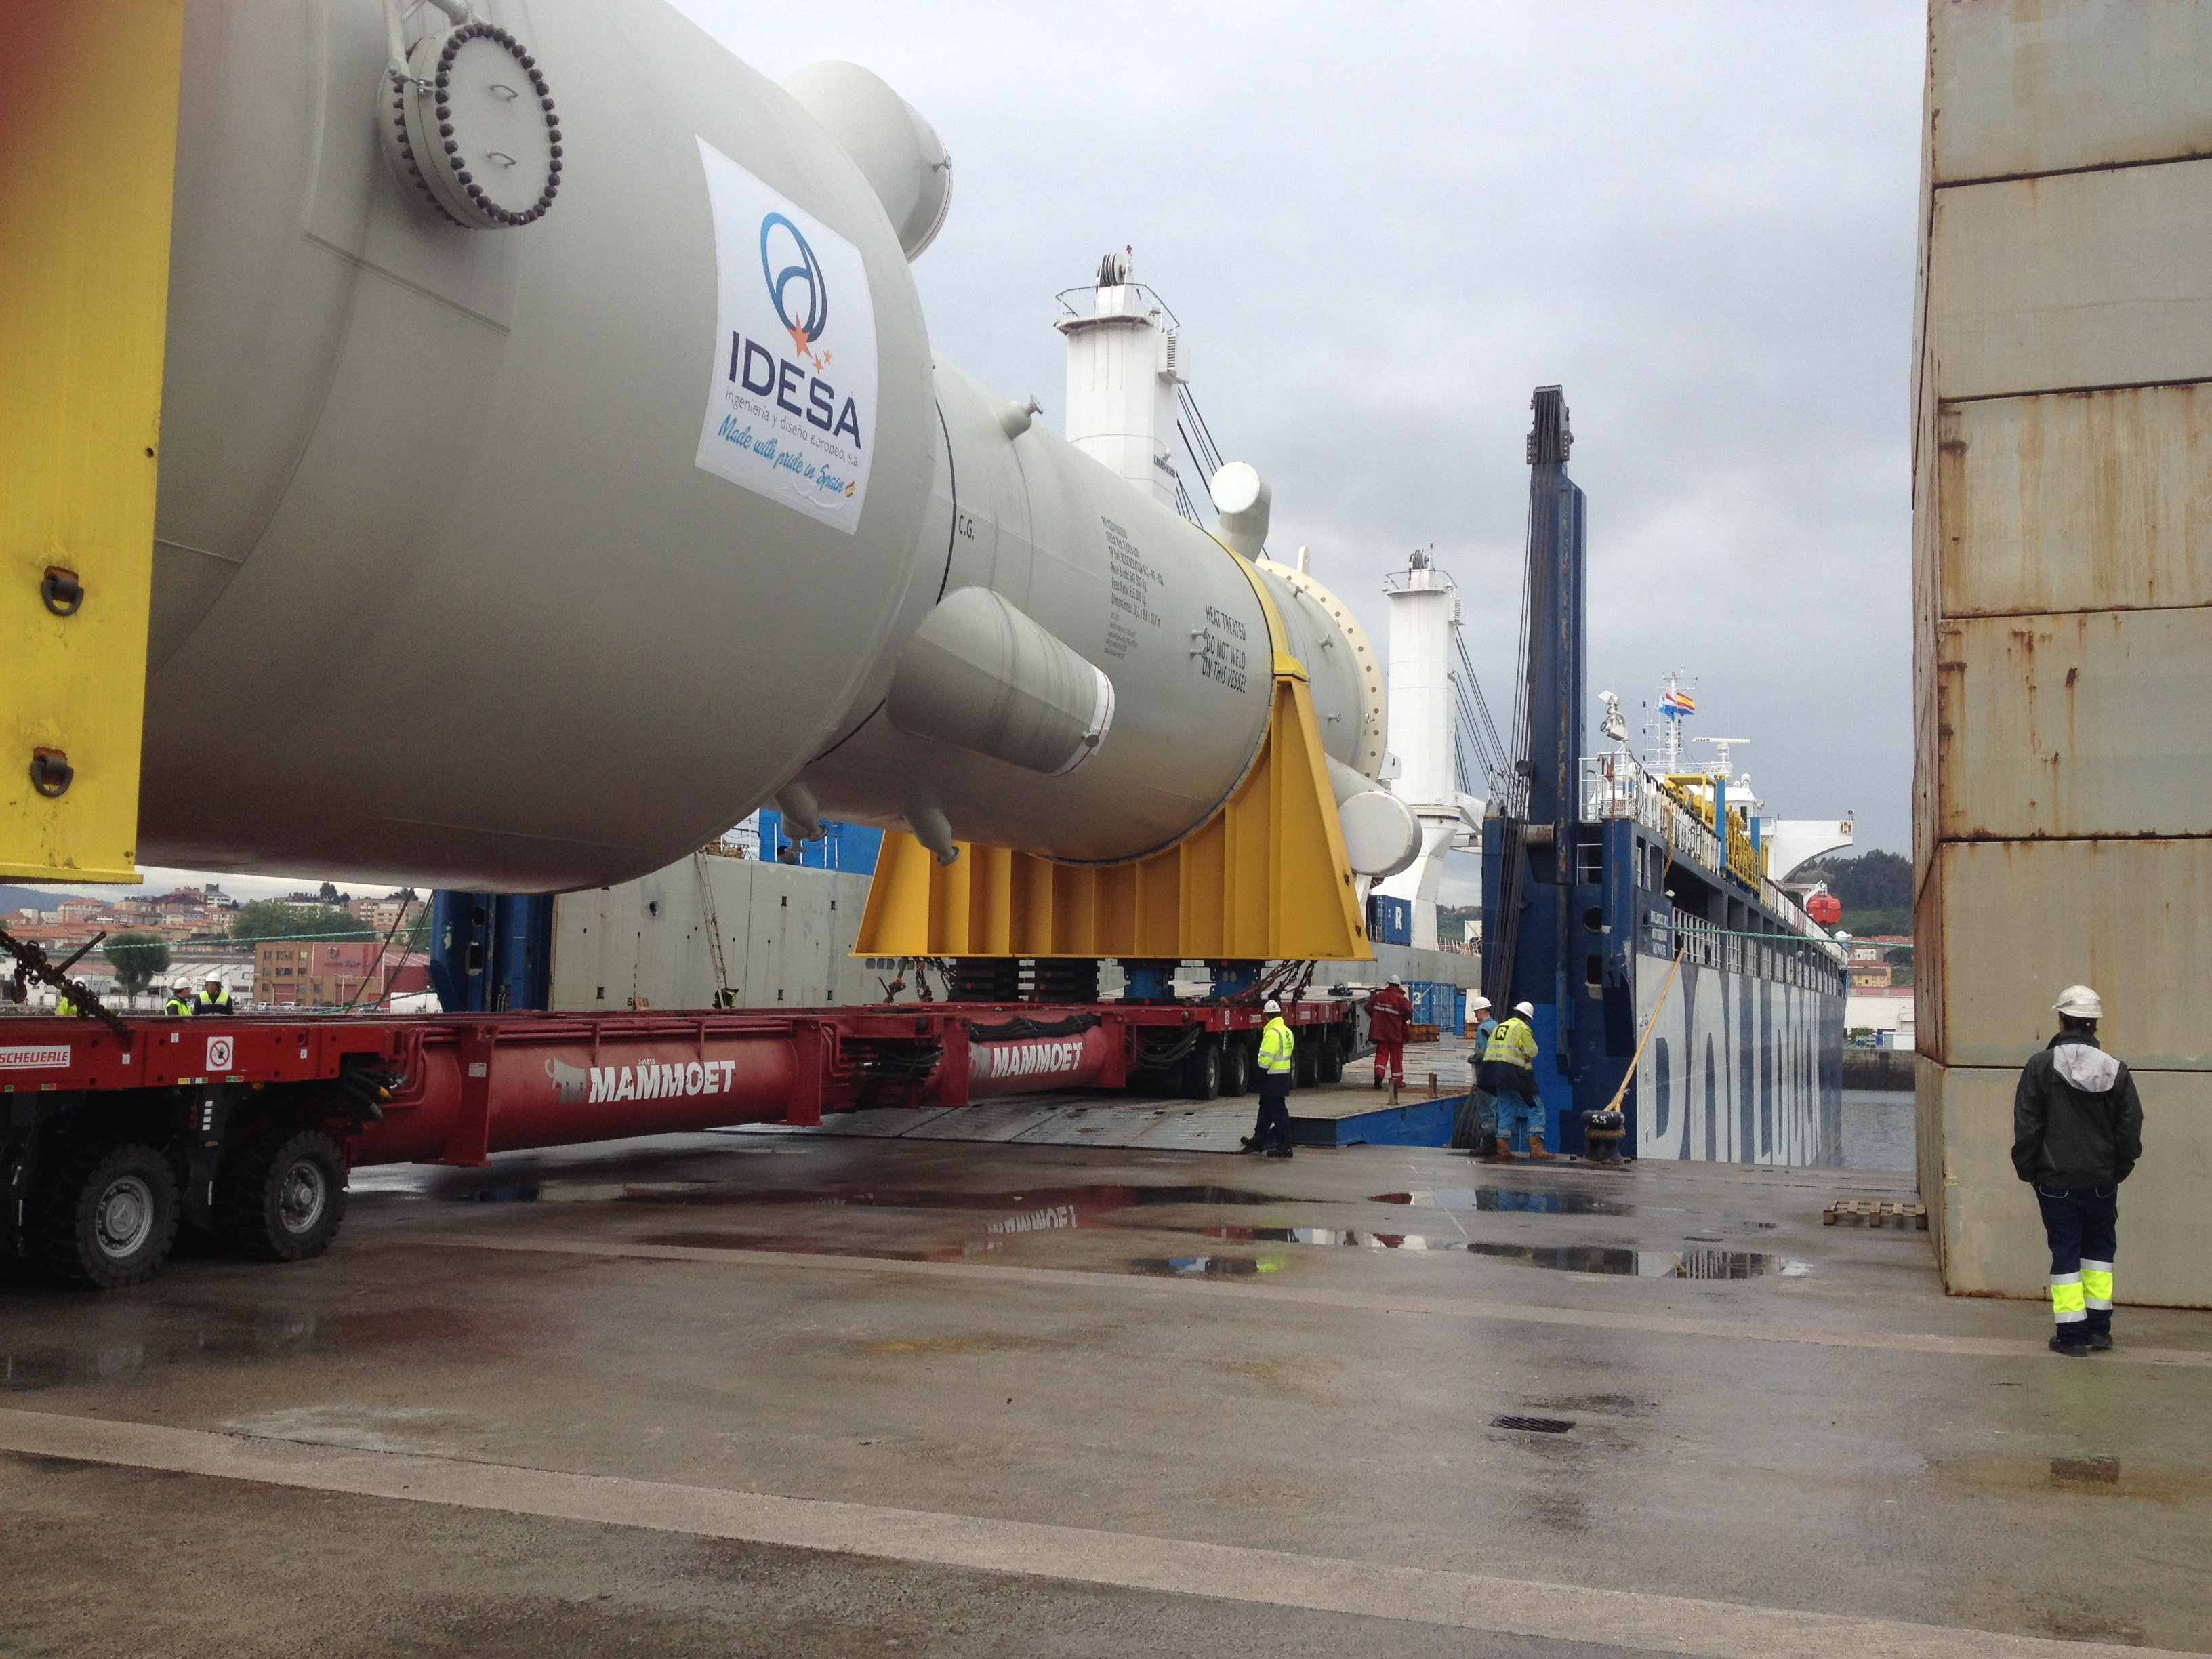 Mammoet and Arbegui joint project included a roll-on/roll-off of a generator and coke drum at Aviles, Spain.